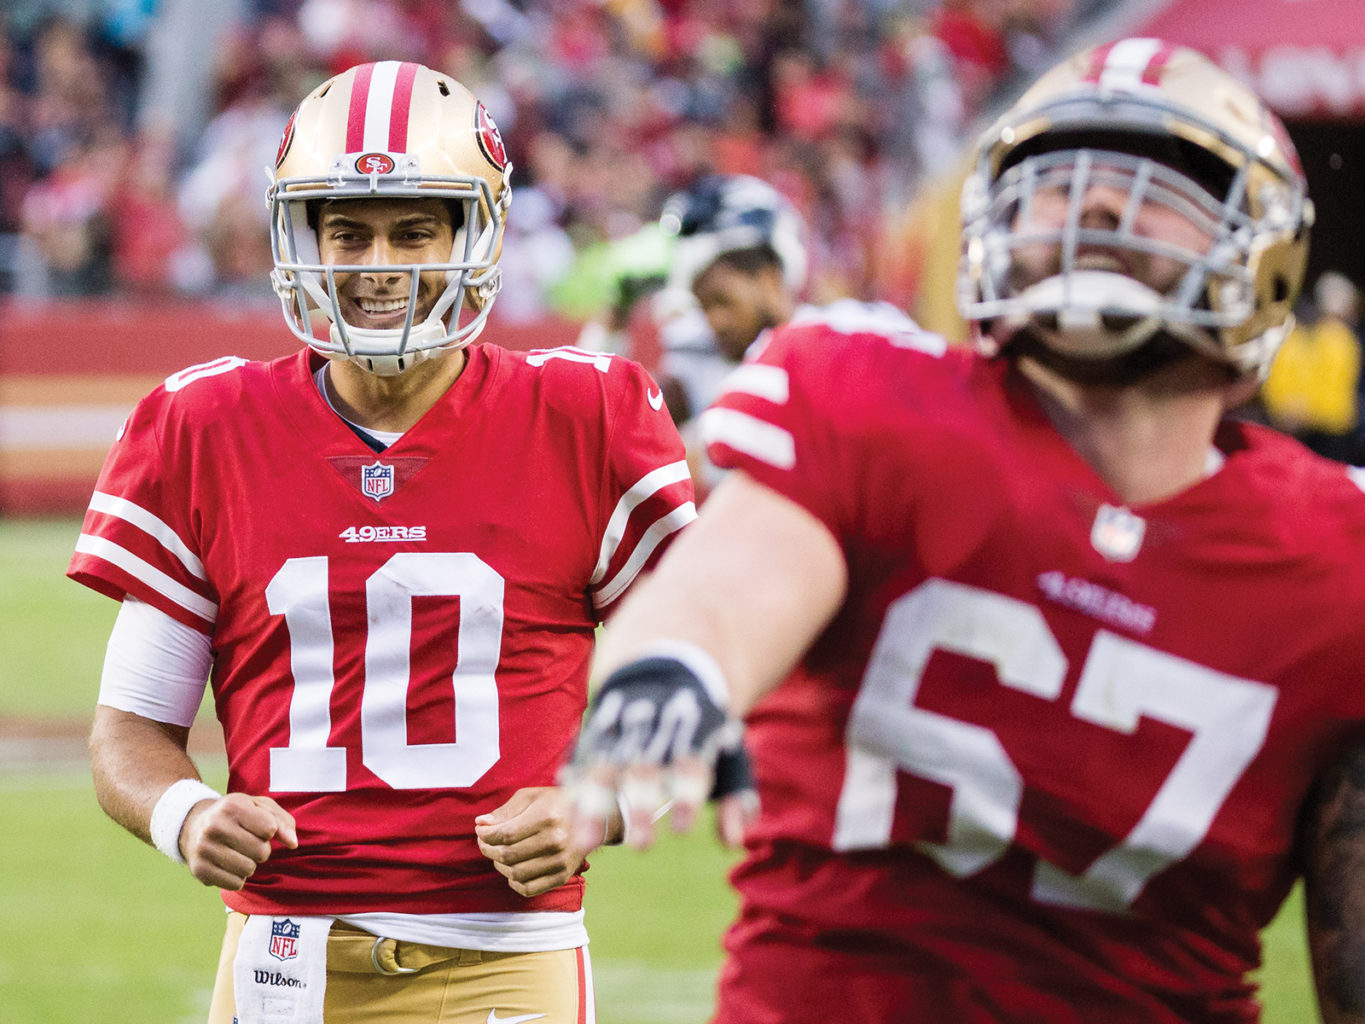 Jimmy Garoppolo and Daniel Kilgore celebrate the 49ers' last-second touchdown that ensured they lost by only 11 points. (Stan Olszewski/Special to S.F. Examiner)